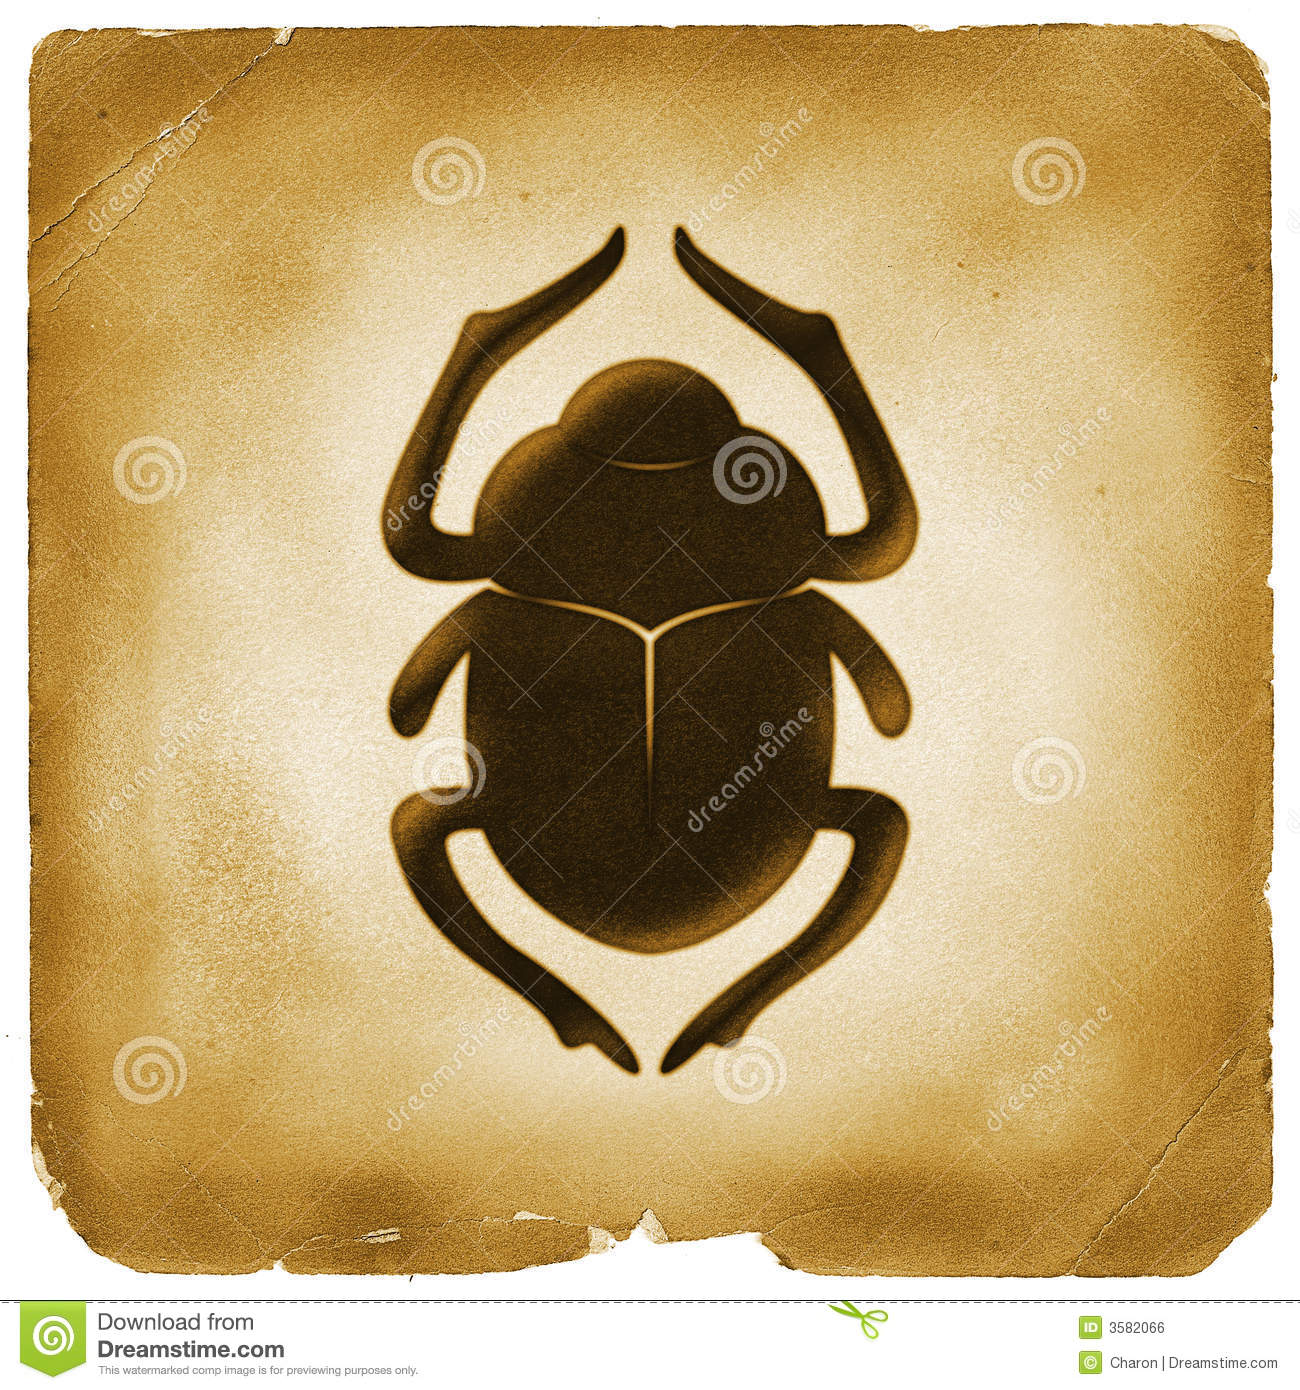 Scarab  Scarabaeidae  Dung beetle   used in ancient Egypt as a symbol    Egyptian Symbols Scarab